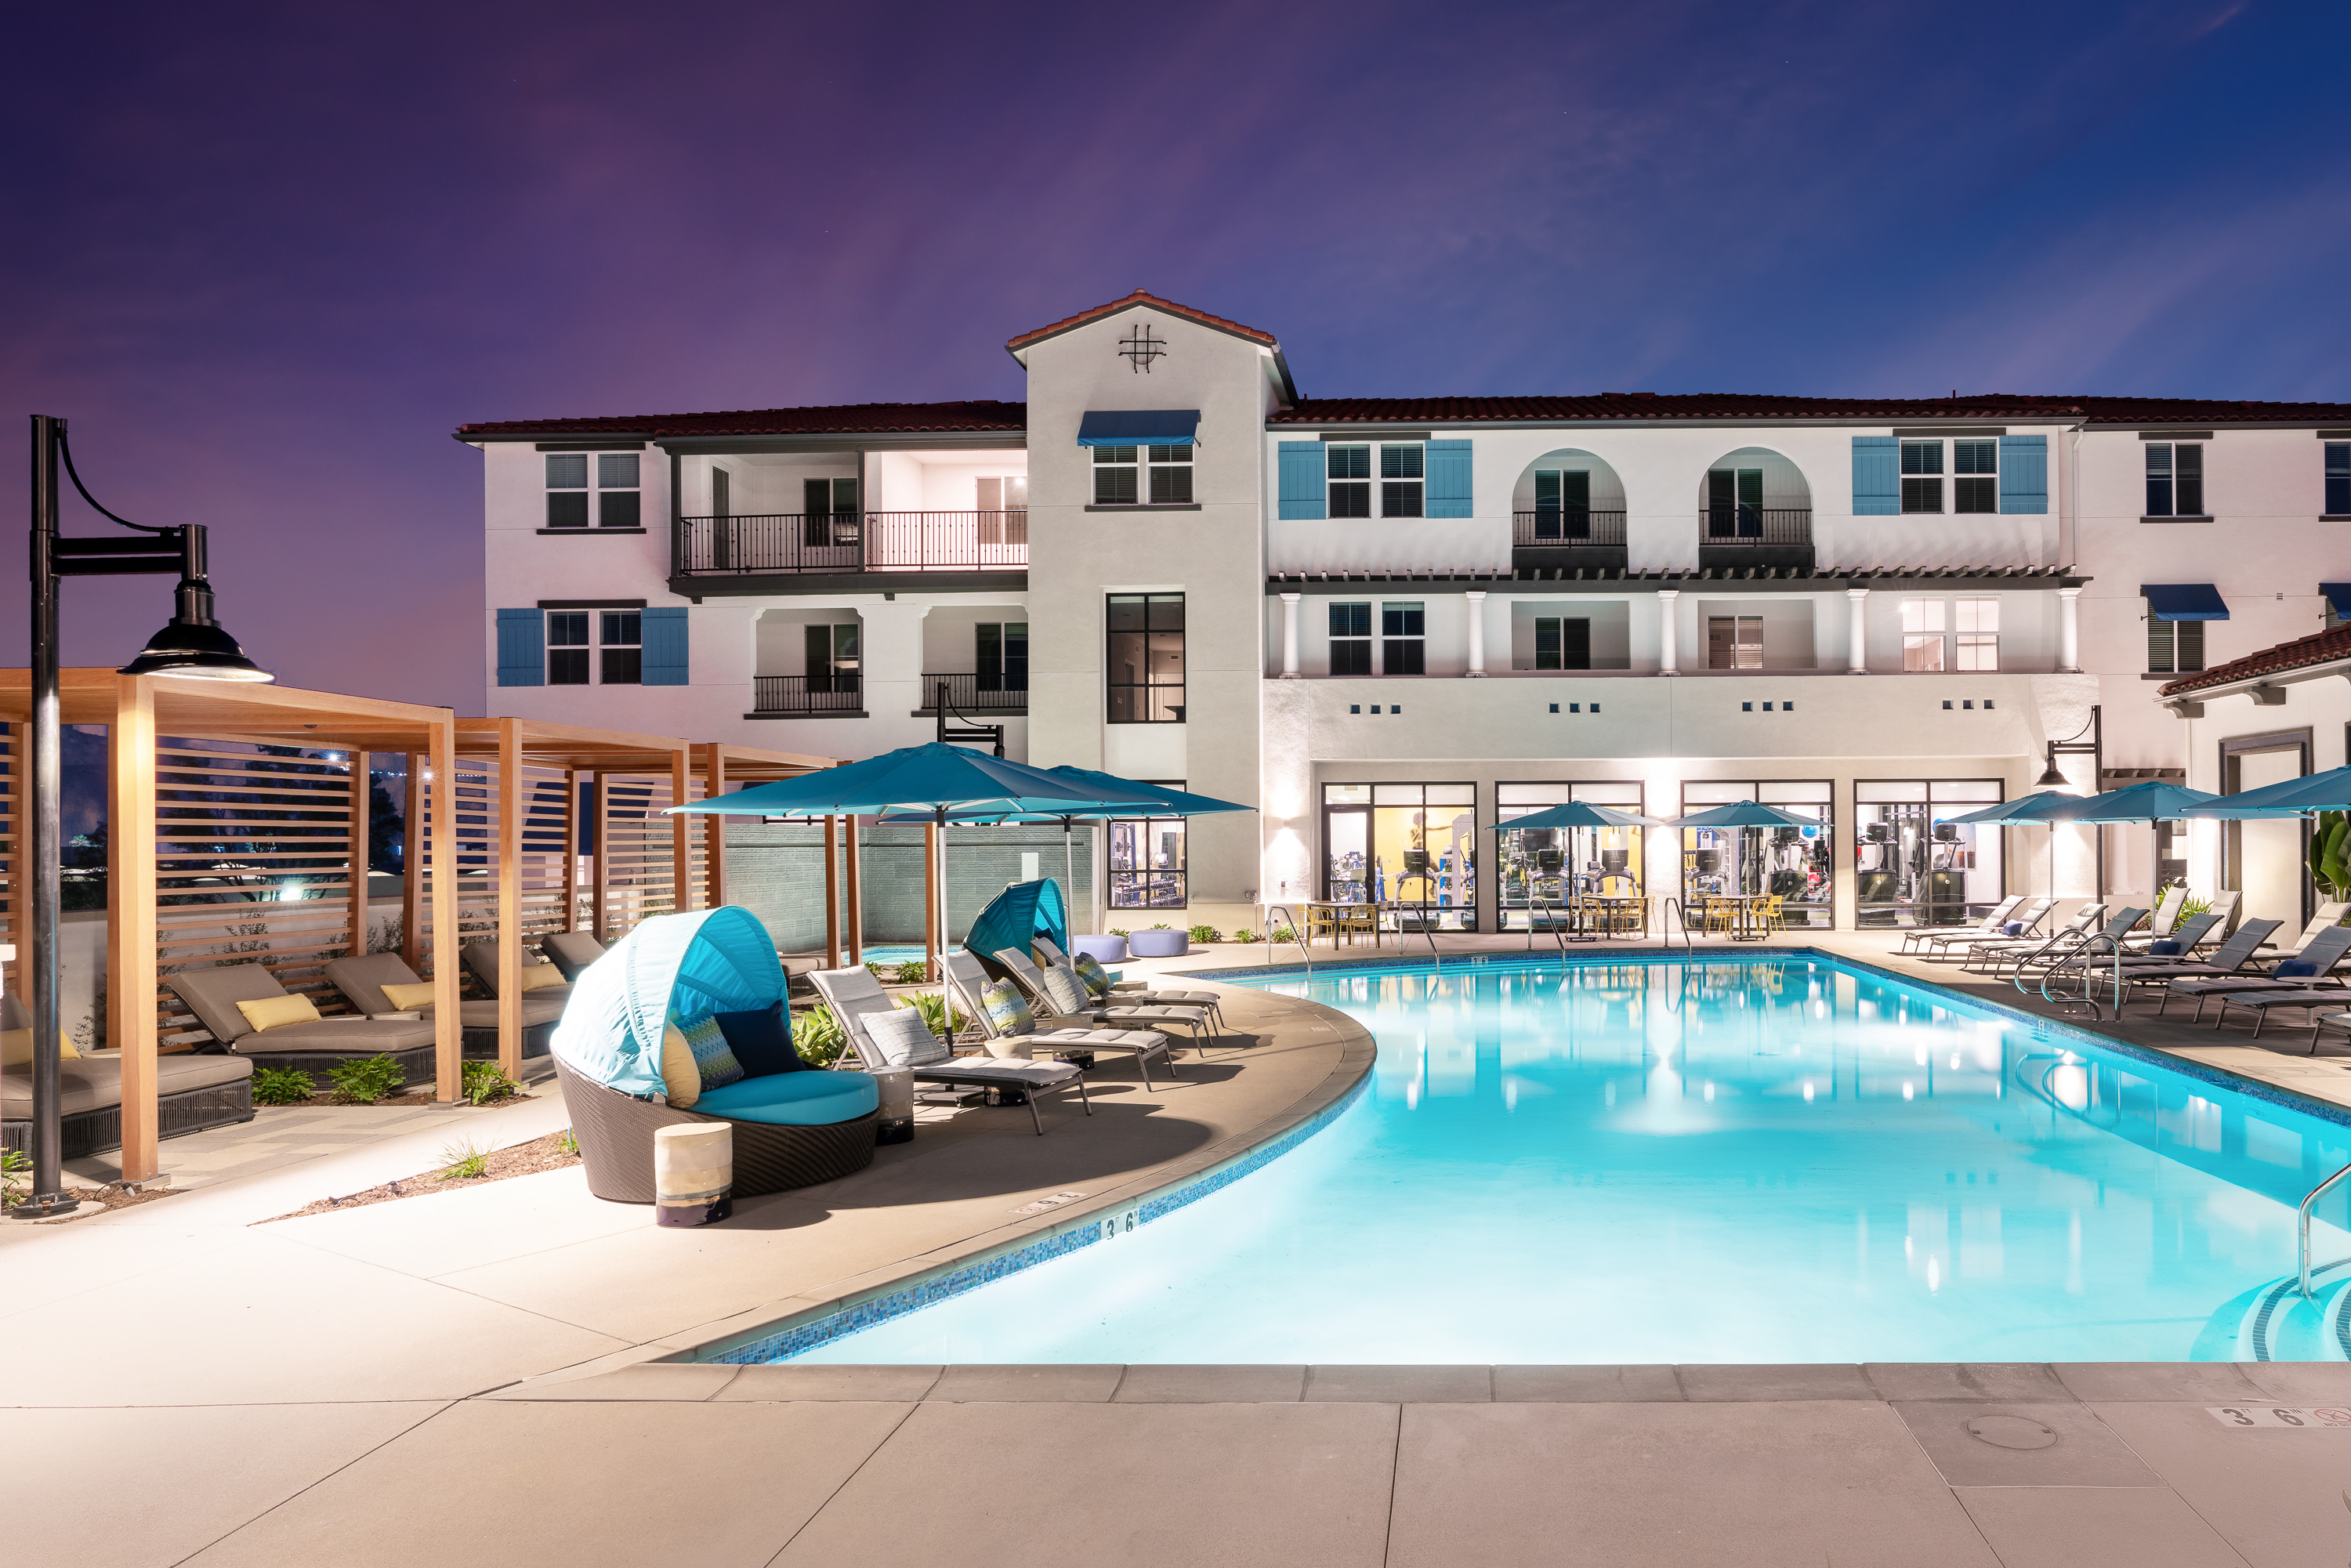 The Monterey Apartments in Corona, CA Nearing Completion